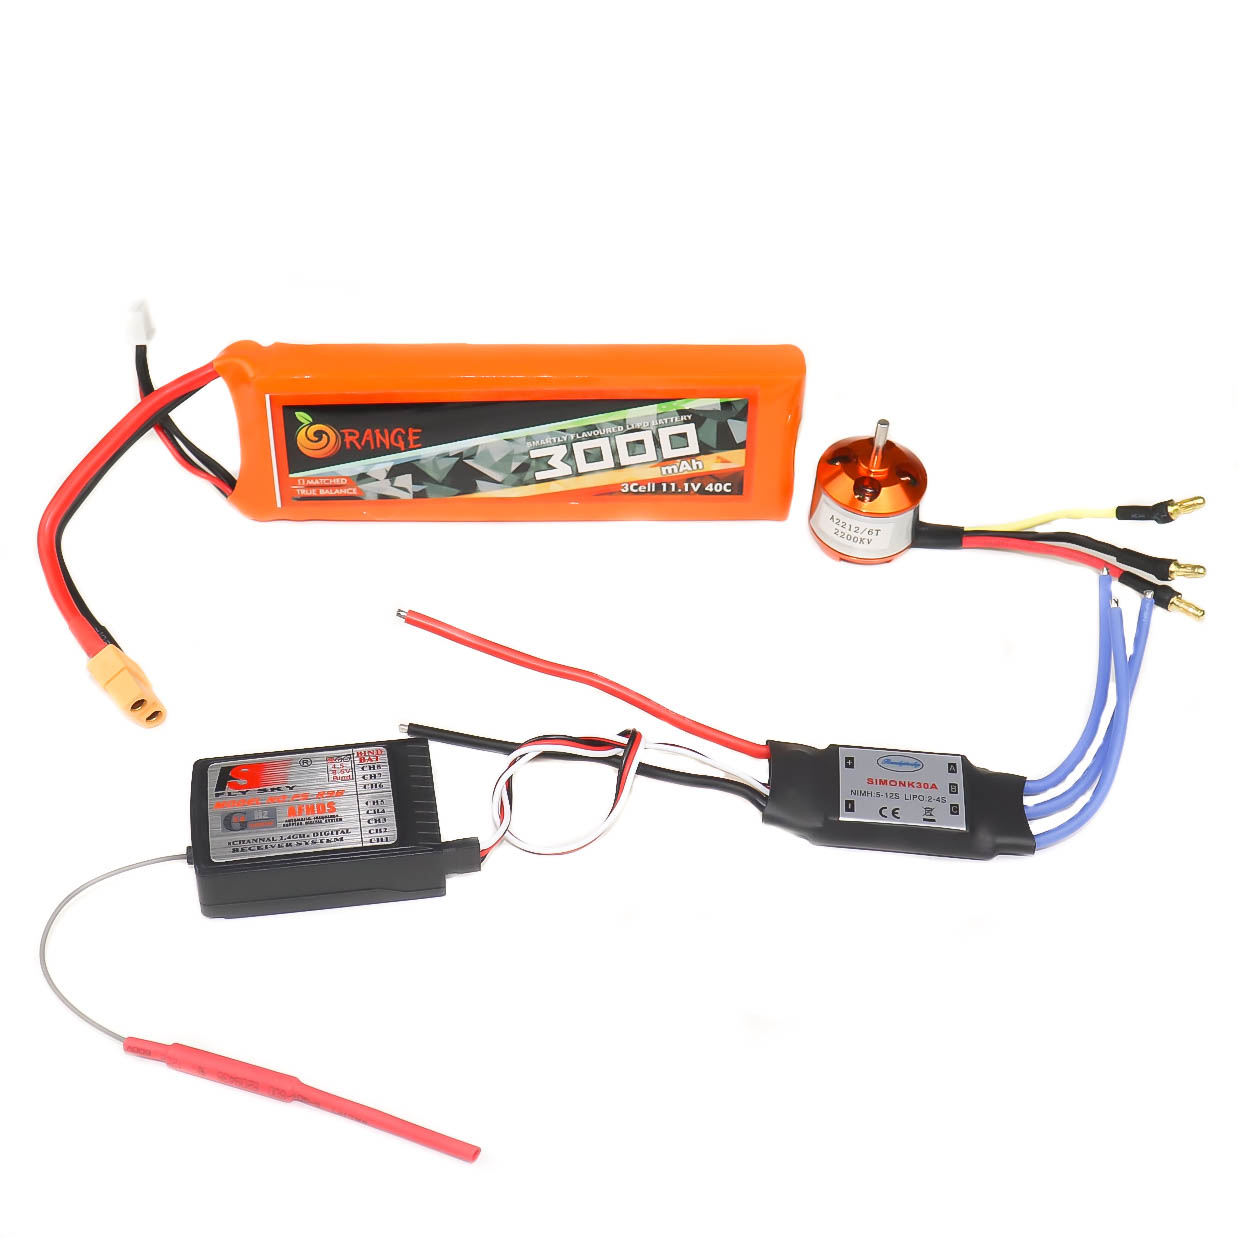 SimonK 30A Brushless Speed